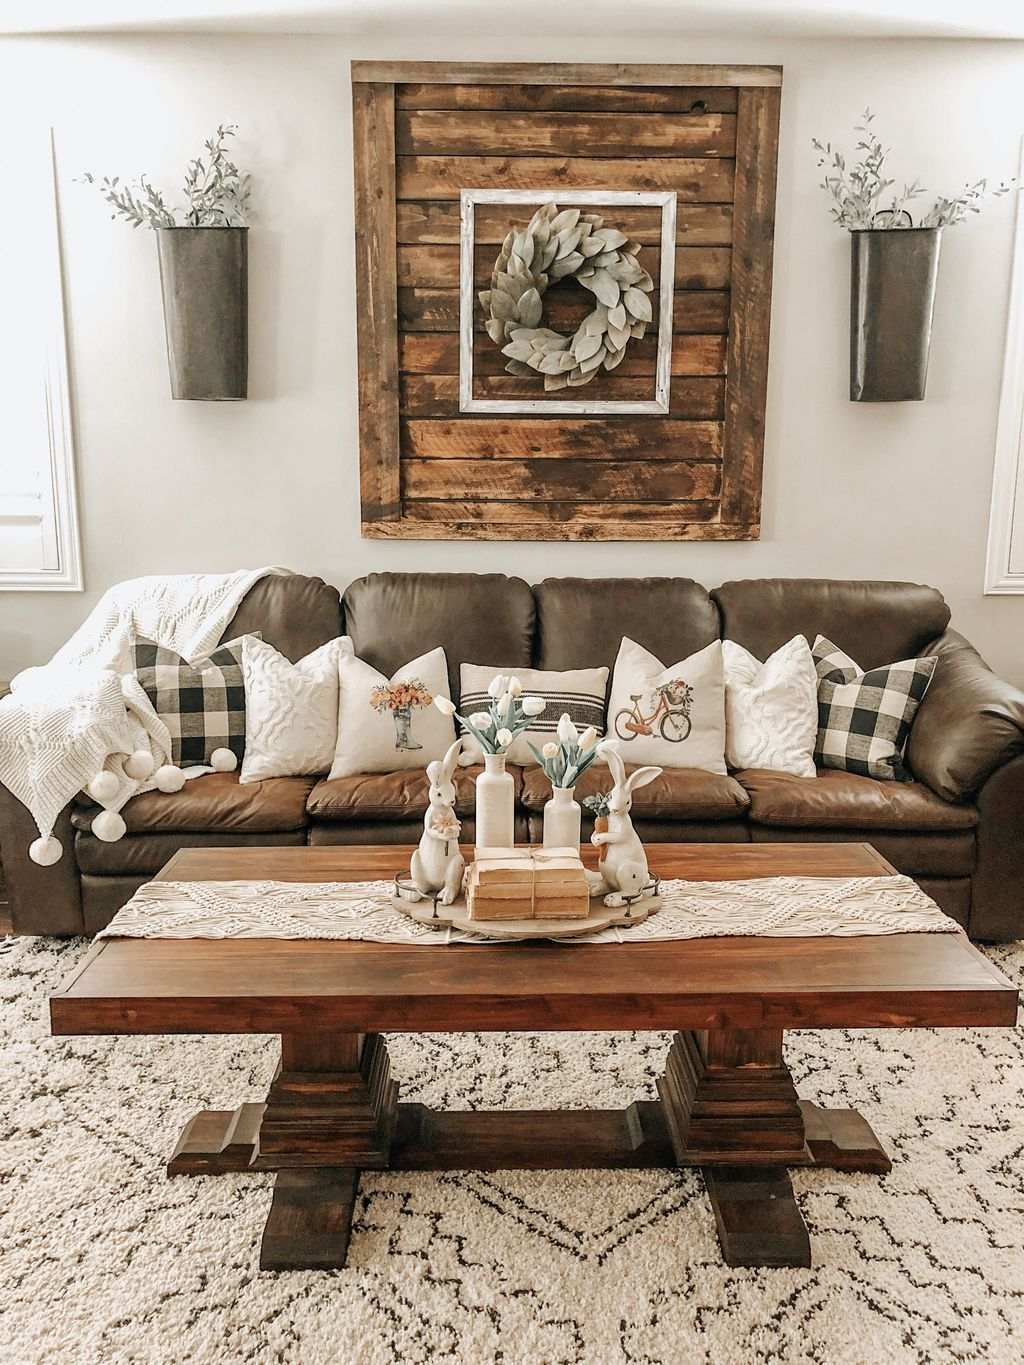 31 Inspiring Rustic Farmhouse Living Room Decor Ideas In 2020 Farmhouse Living Room Furniture